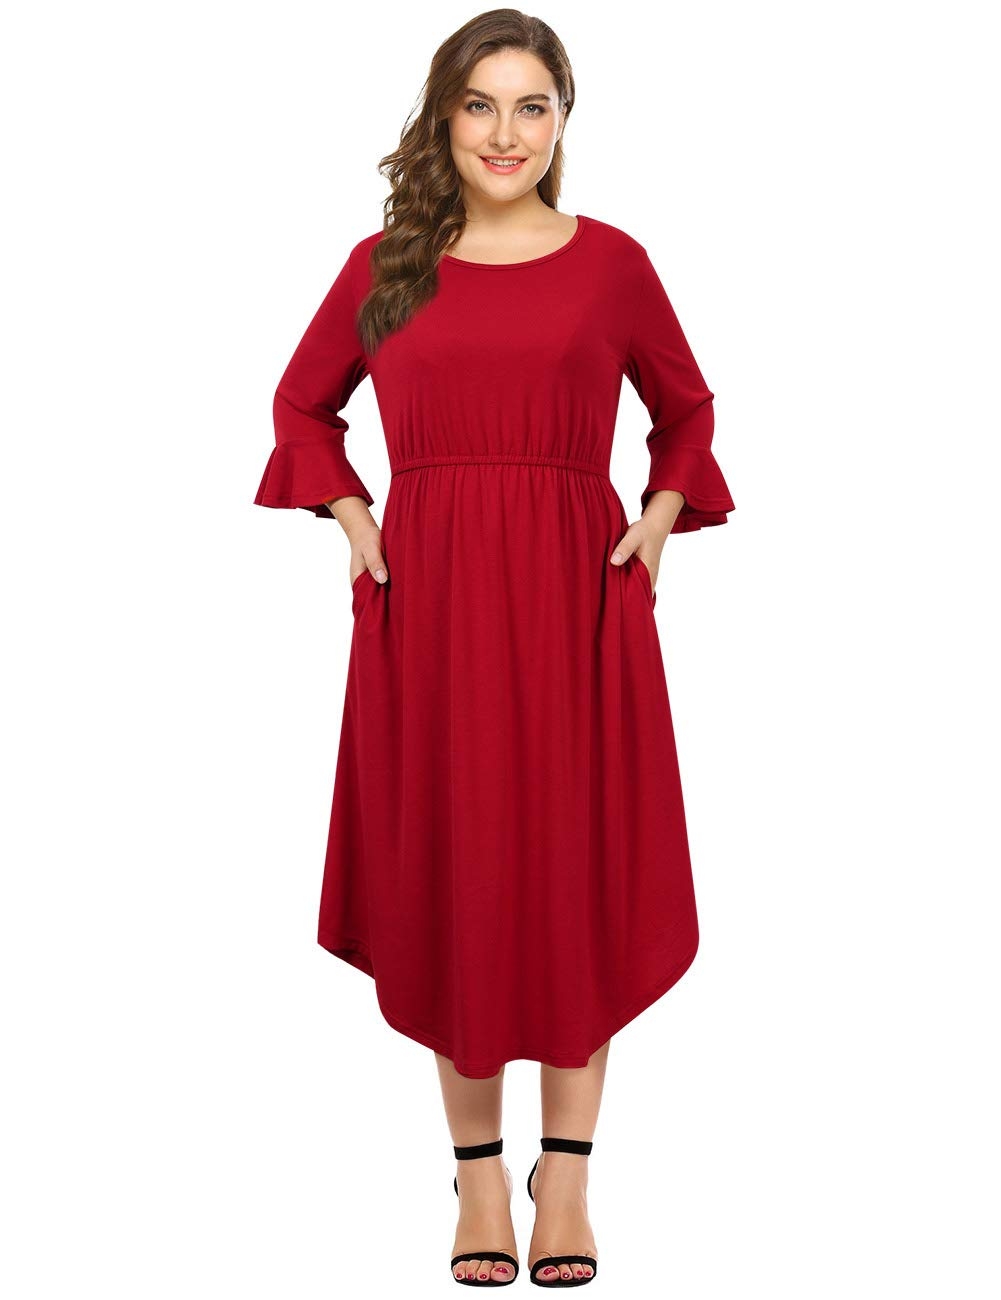 222a1e79530 Clearlove Women s Plus Size Bell Sleeve Casual Hi Low Maxi Dress with  Pockets Burgundy 4XL